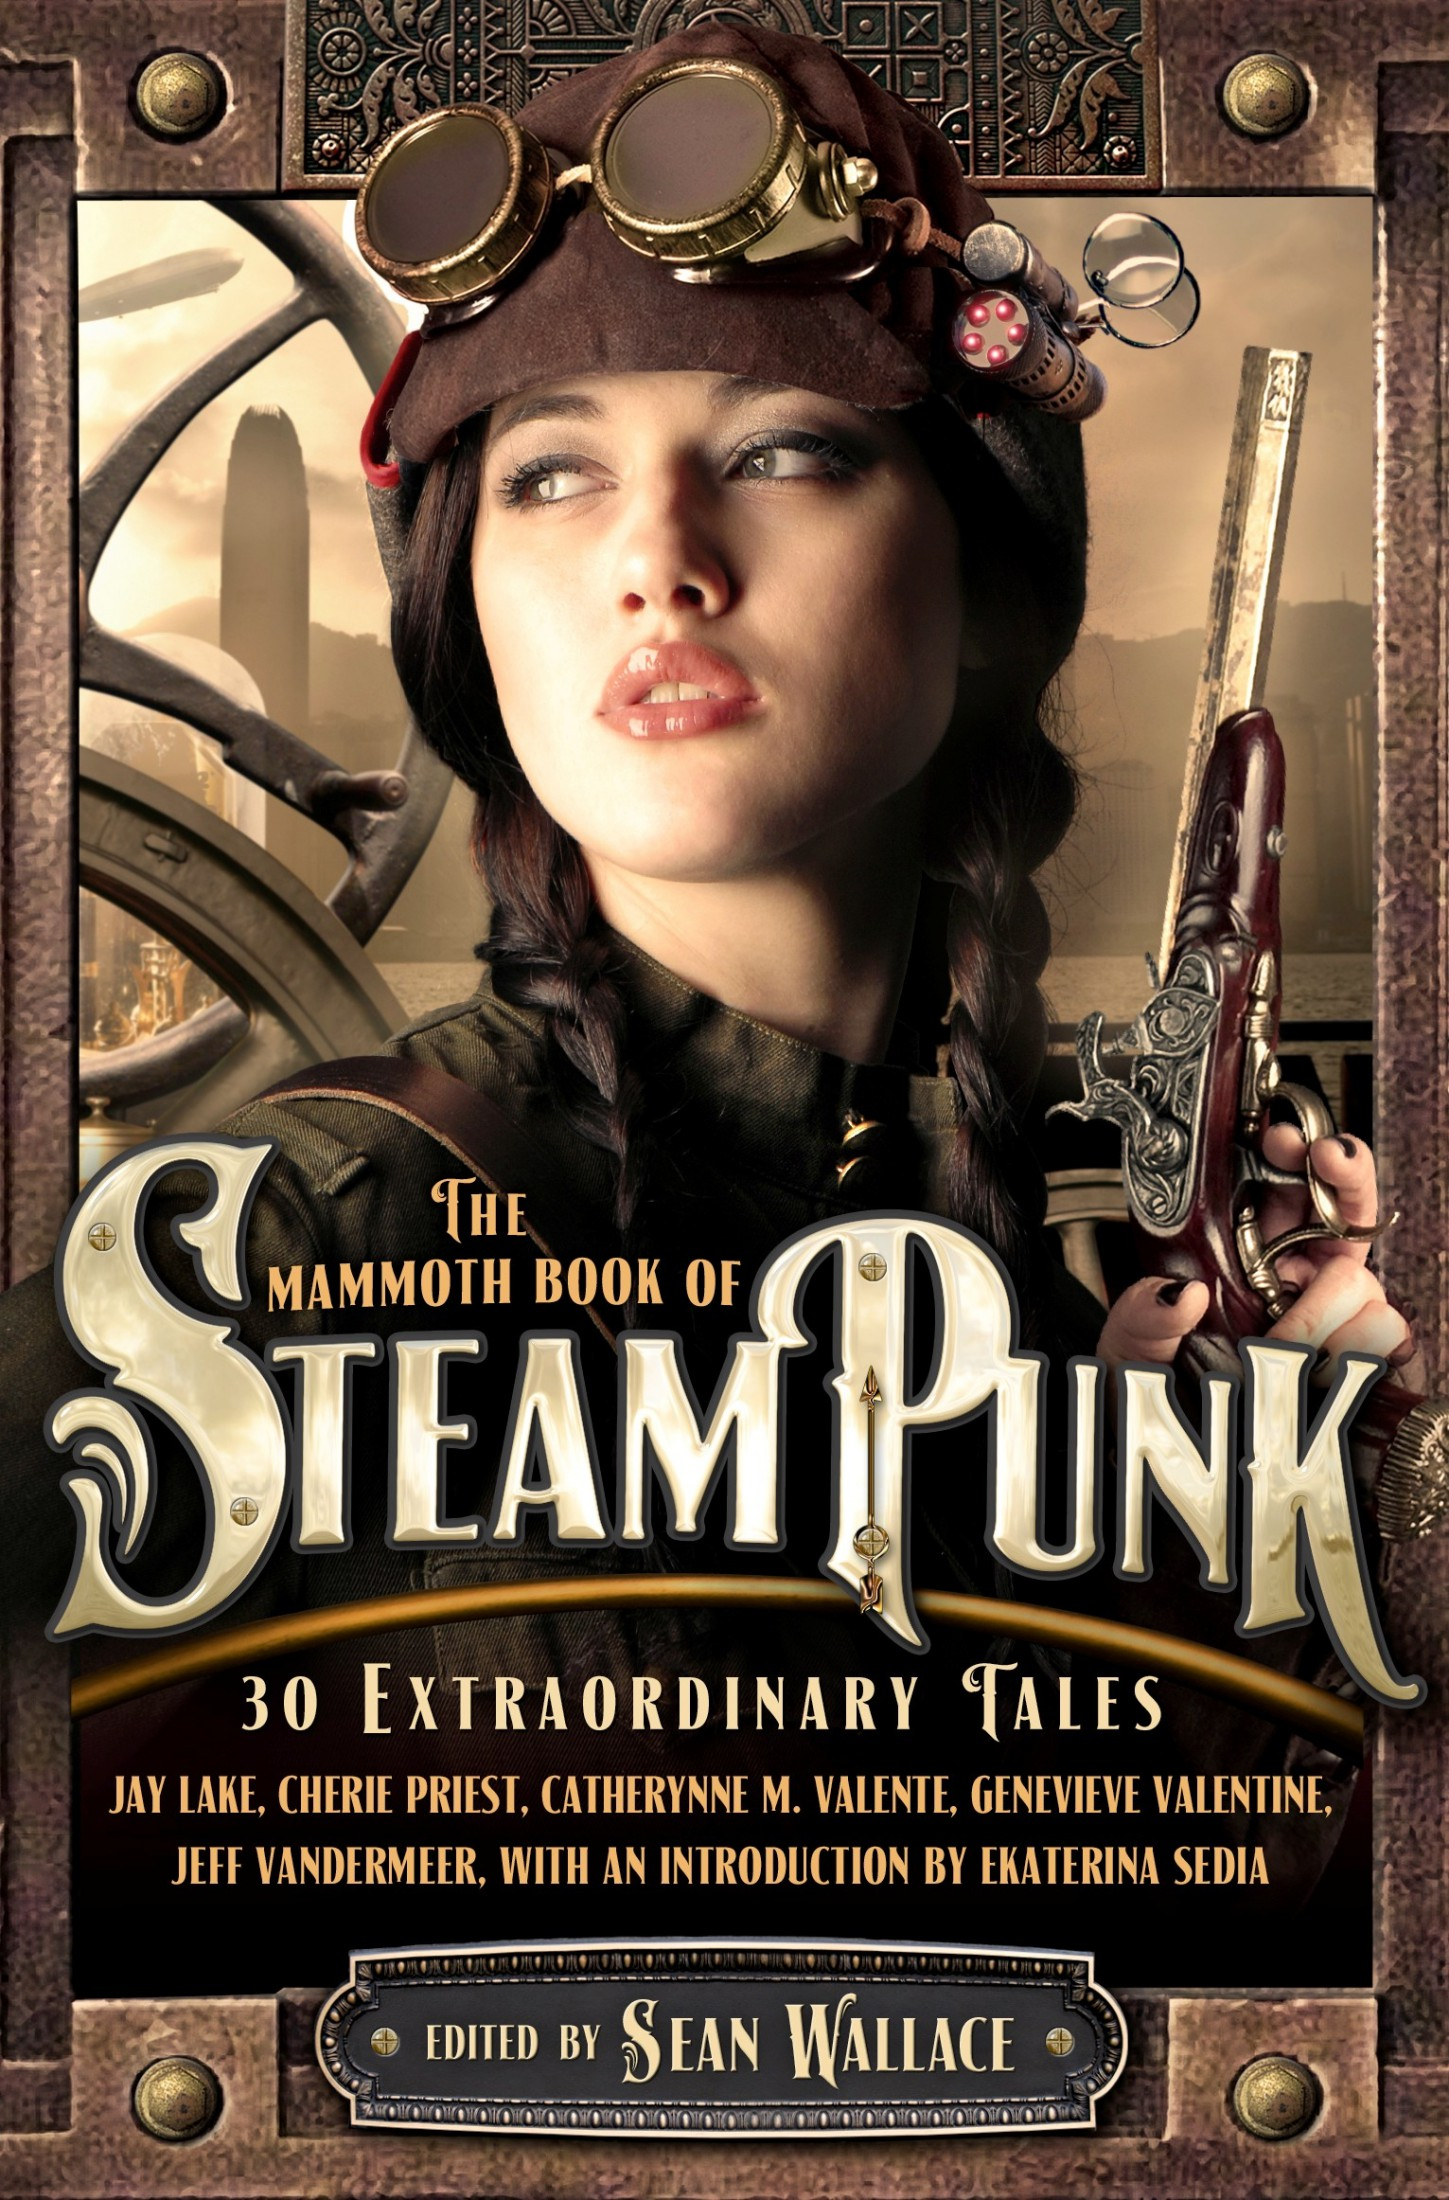 The Mammoth Book of Steampunk 1st Edition Pdf Free Download